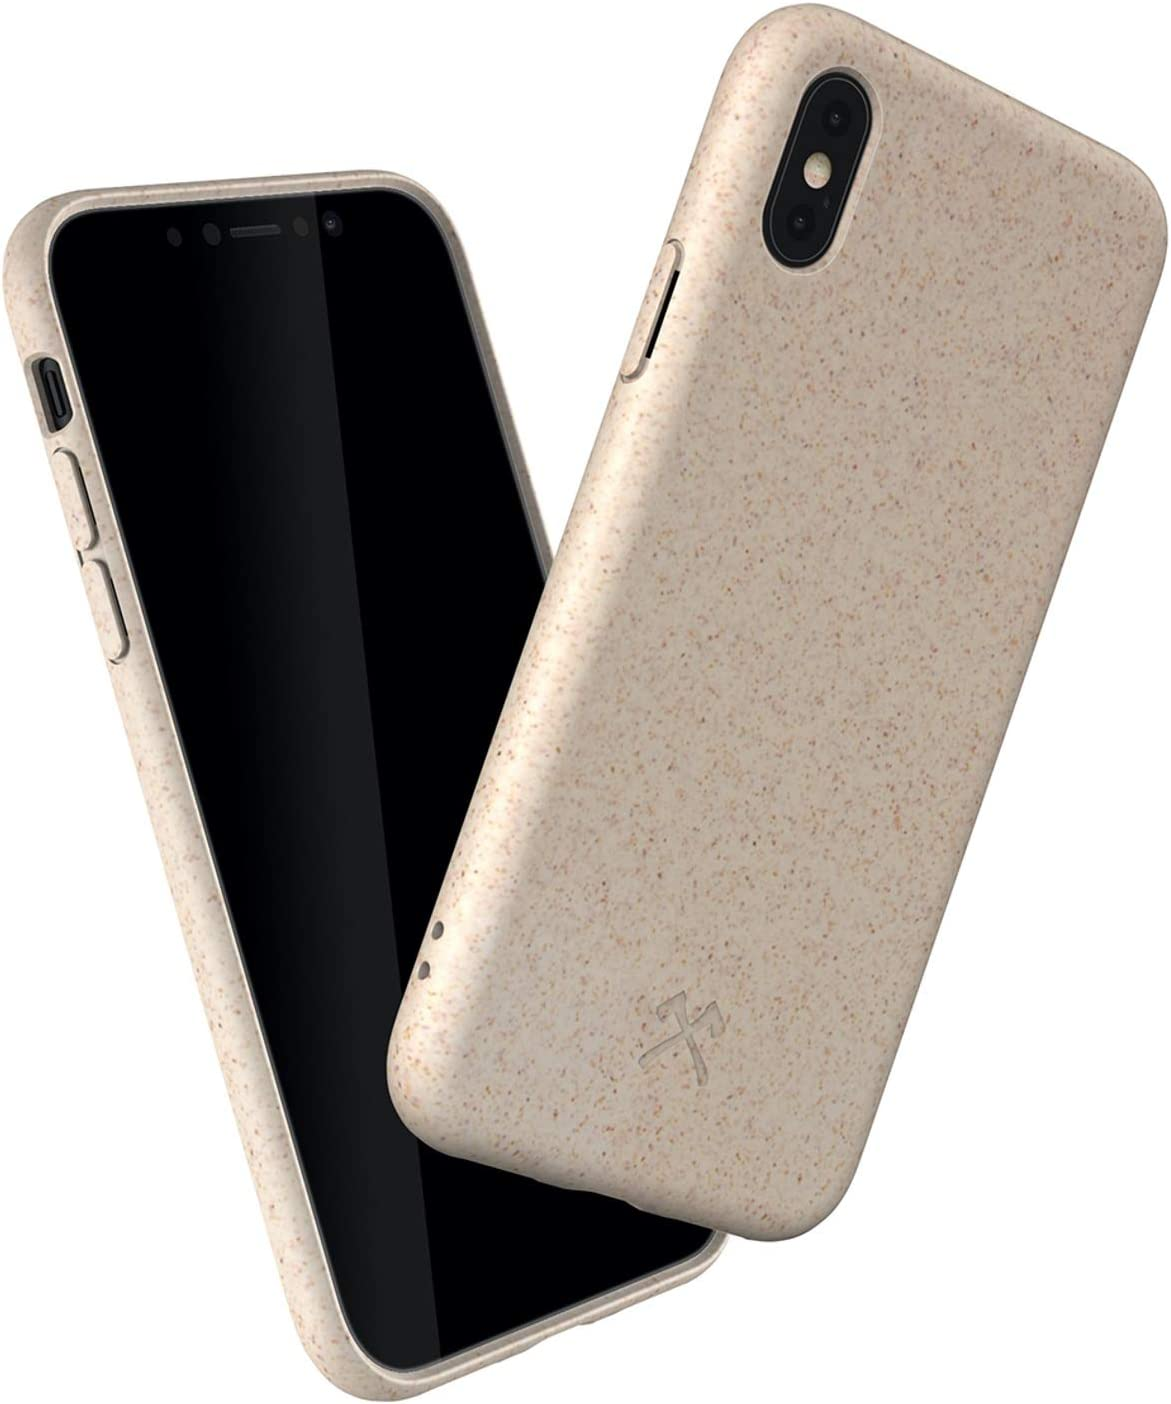 Woodcessories - Phone Case Compatible with iPhone X Case White, iPhone Xs Case White - Ecofriendly, Made of Plants